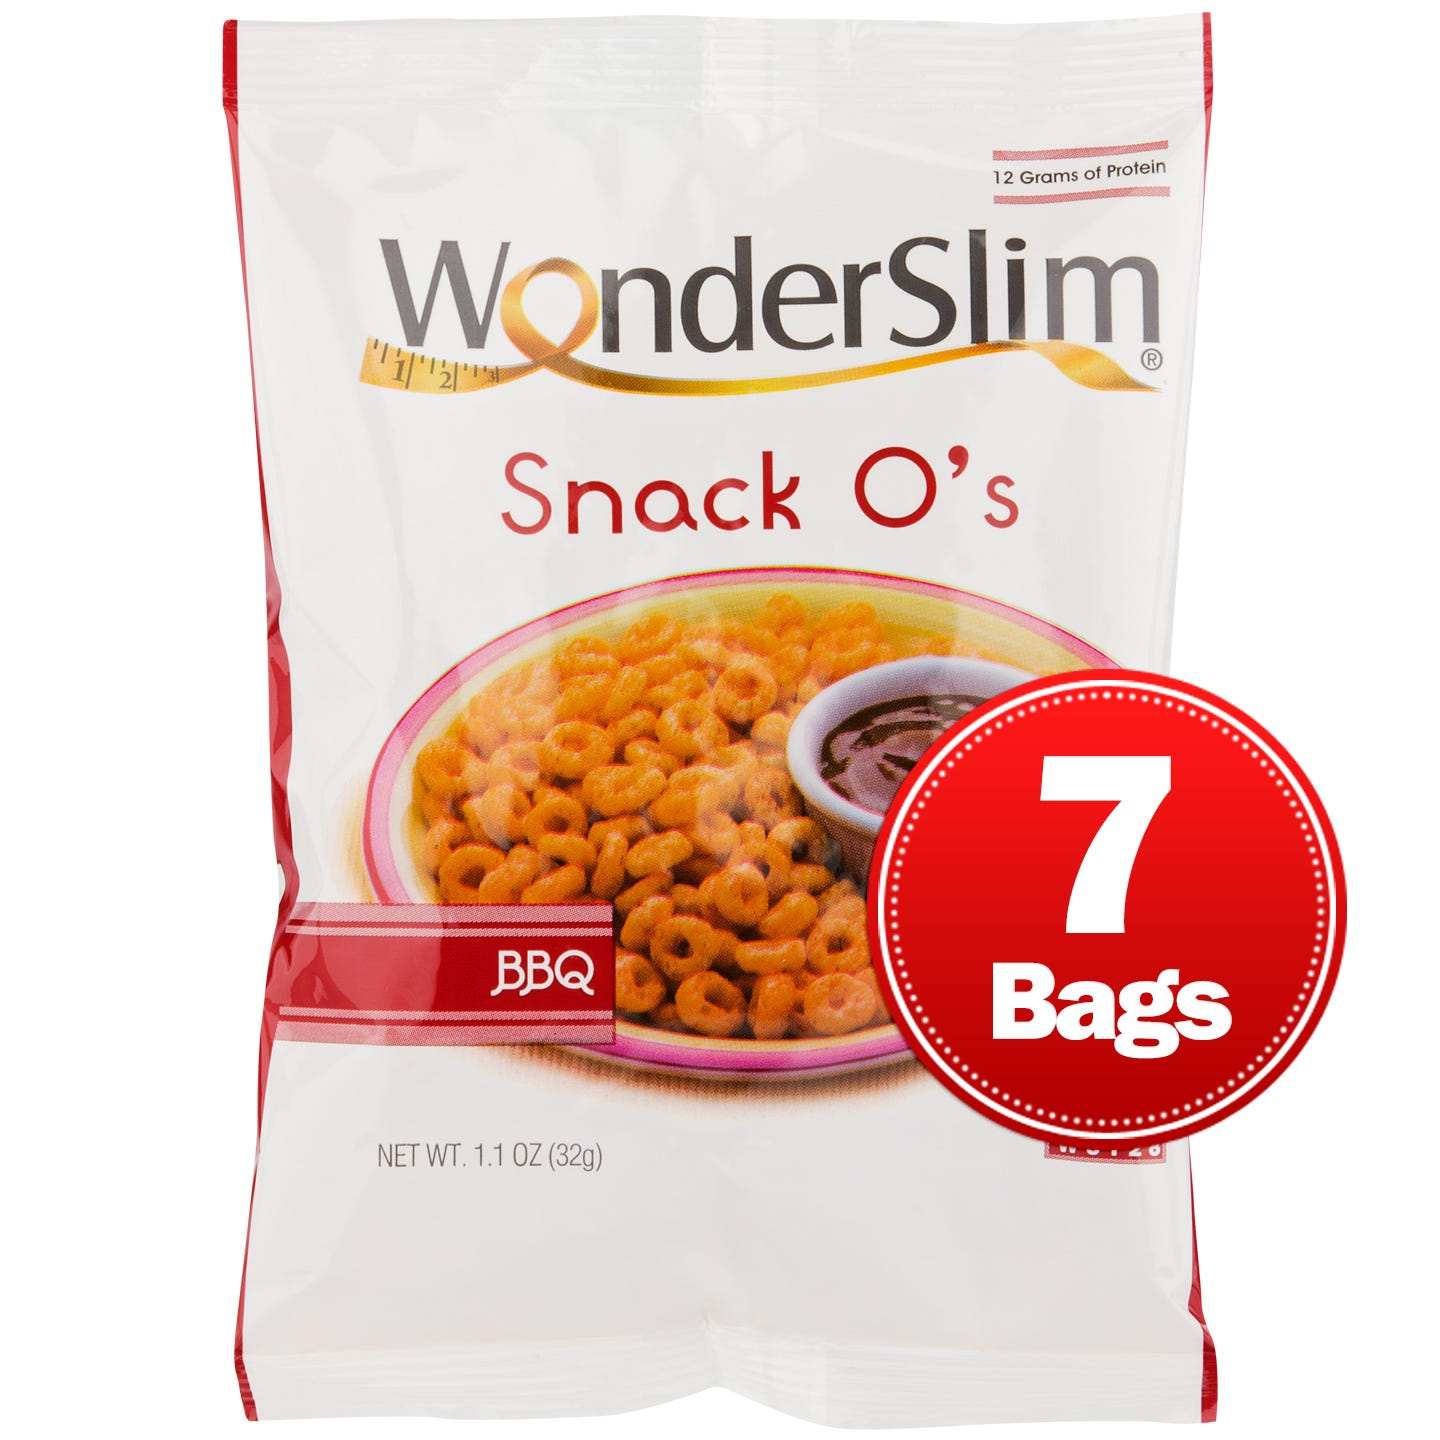 WonderSlim Snack Os BBQ (7 ct) - Rapid Diet Weight Loss Products Shop